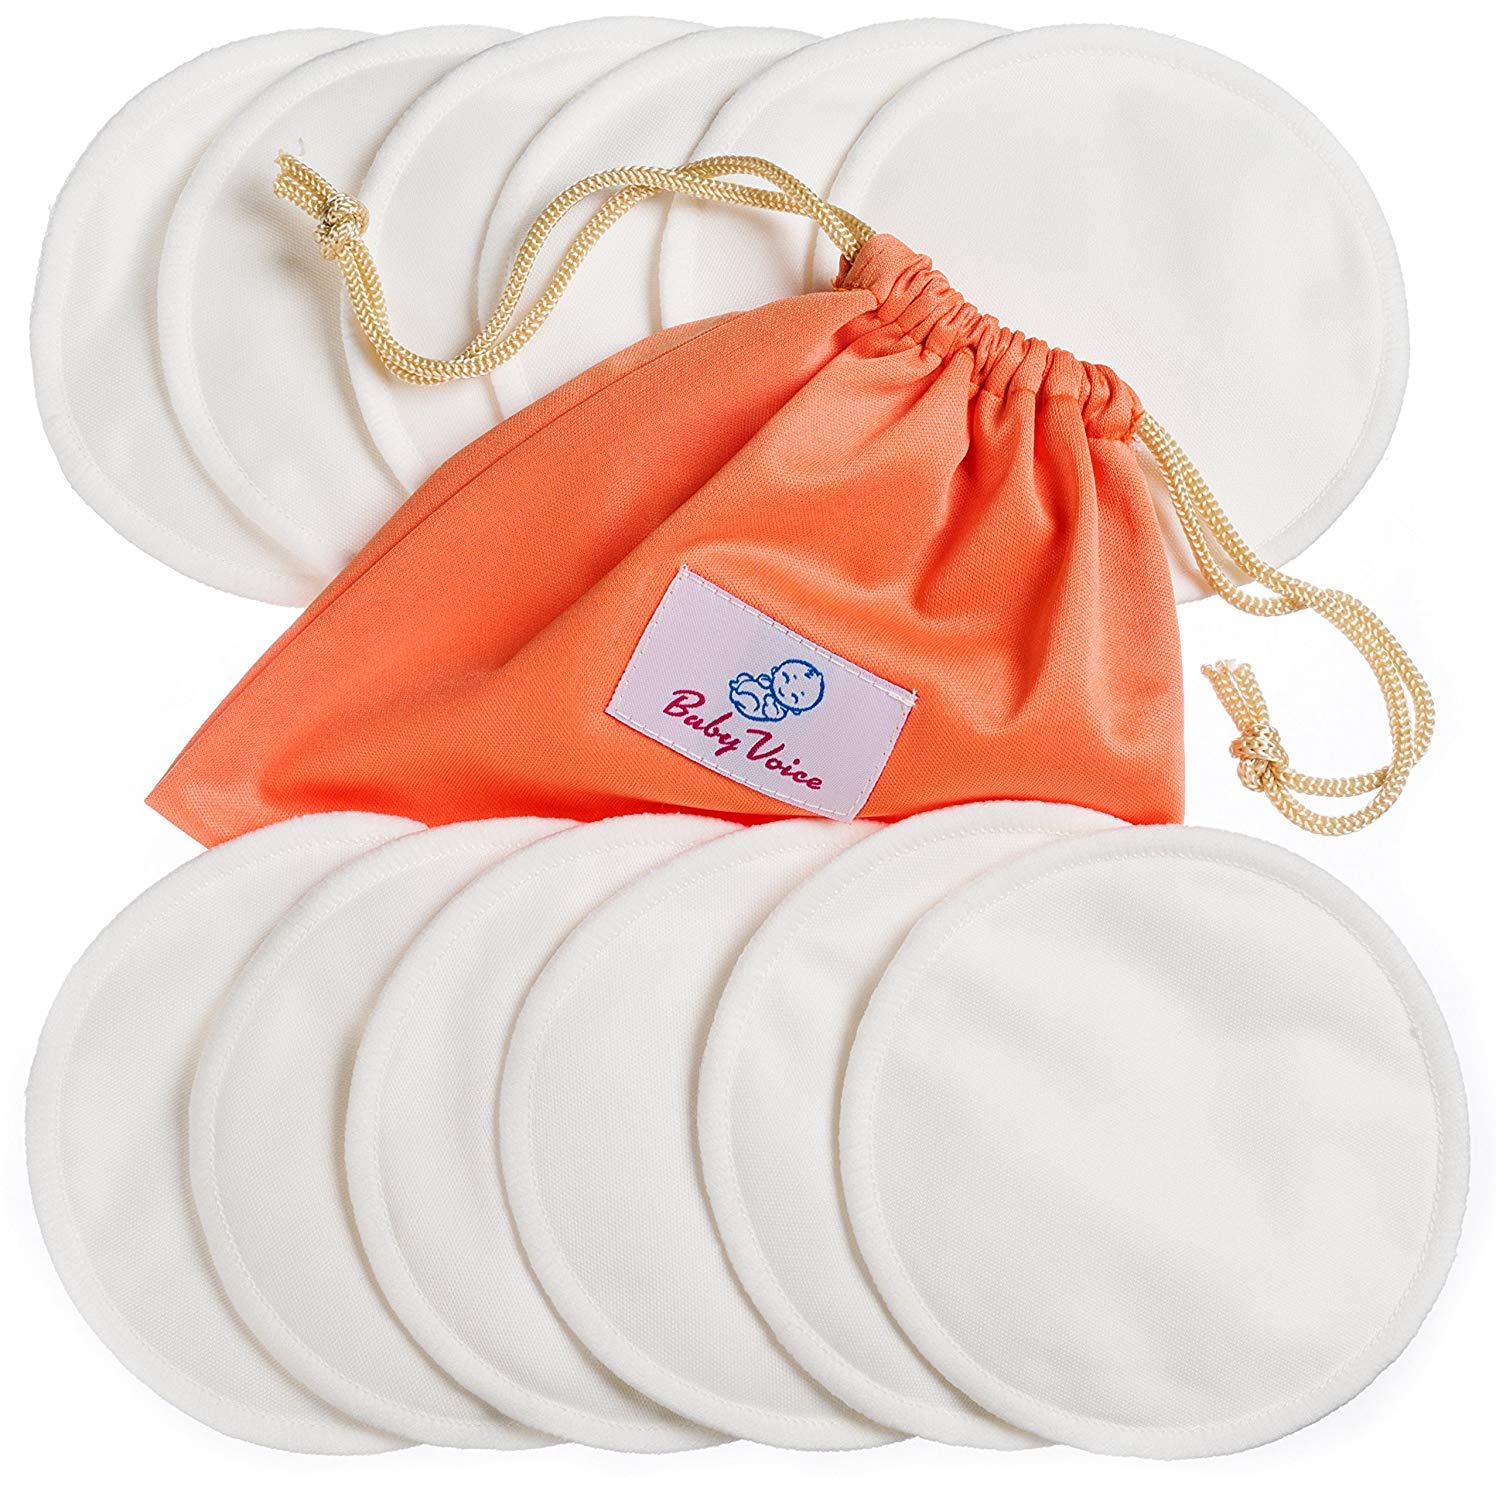 Washable Nursing Pads 12 Pack | Organic Bamboo | Laundry & Travel Bag | Softest Reusable Breast Pads by BabyVoice